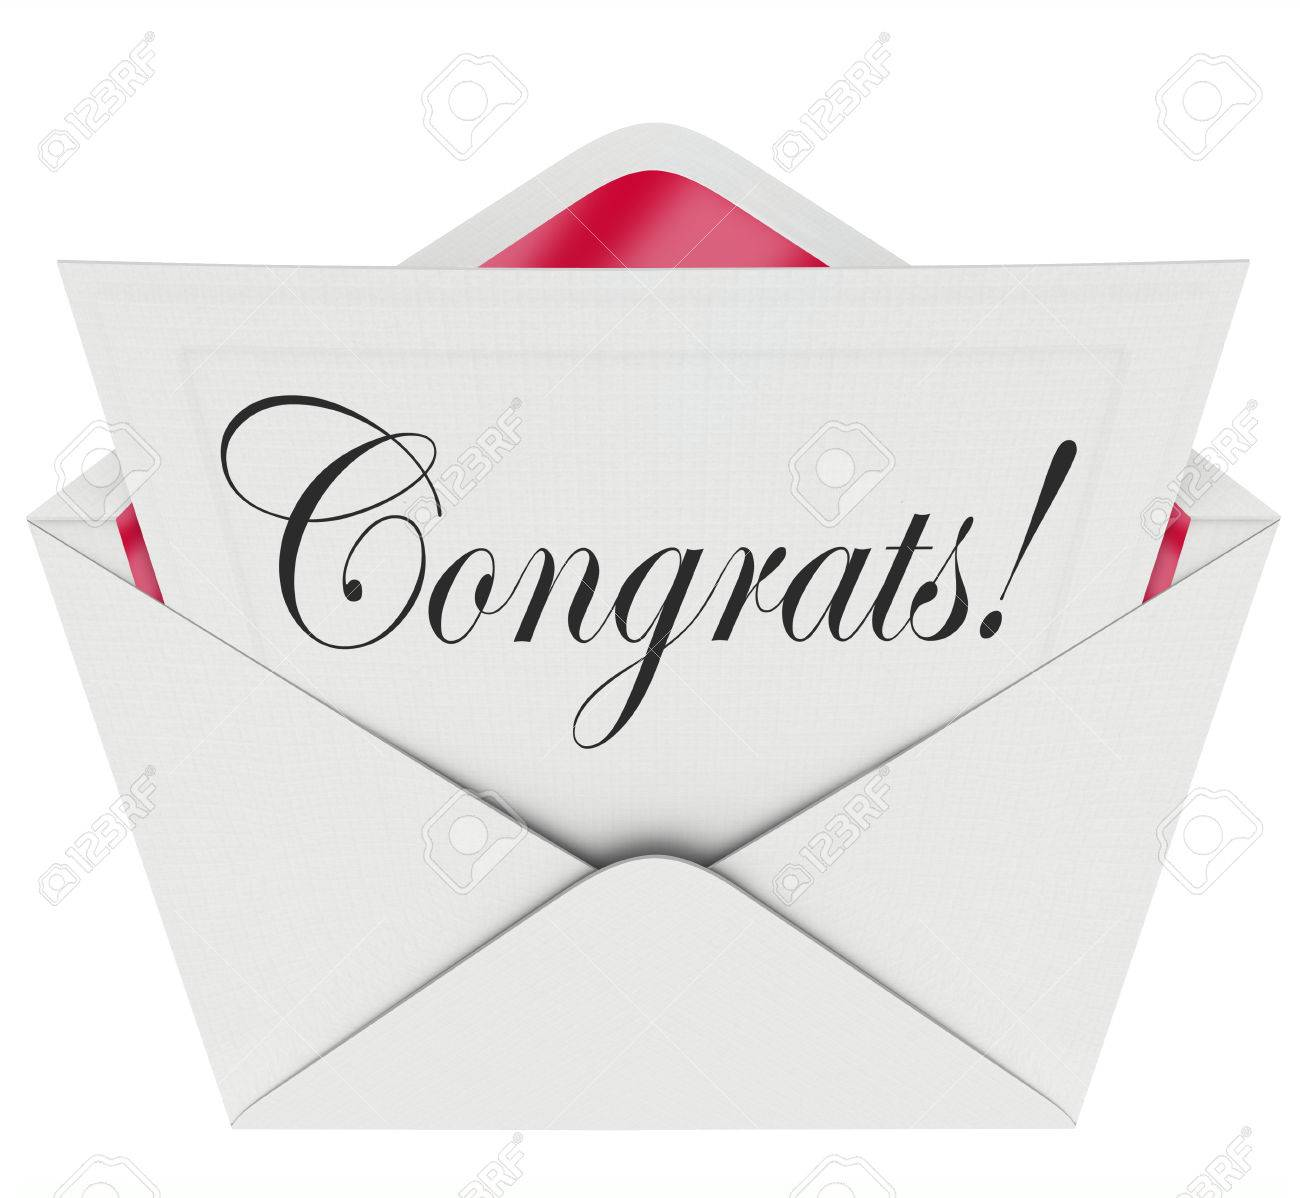 congrats word on a letter note or card coming out of an open congrats word on a letter note or card coming out of an open envelope to